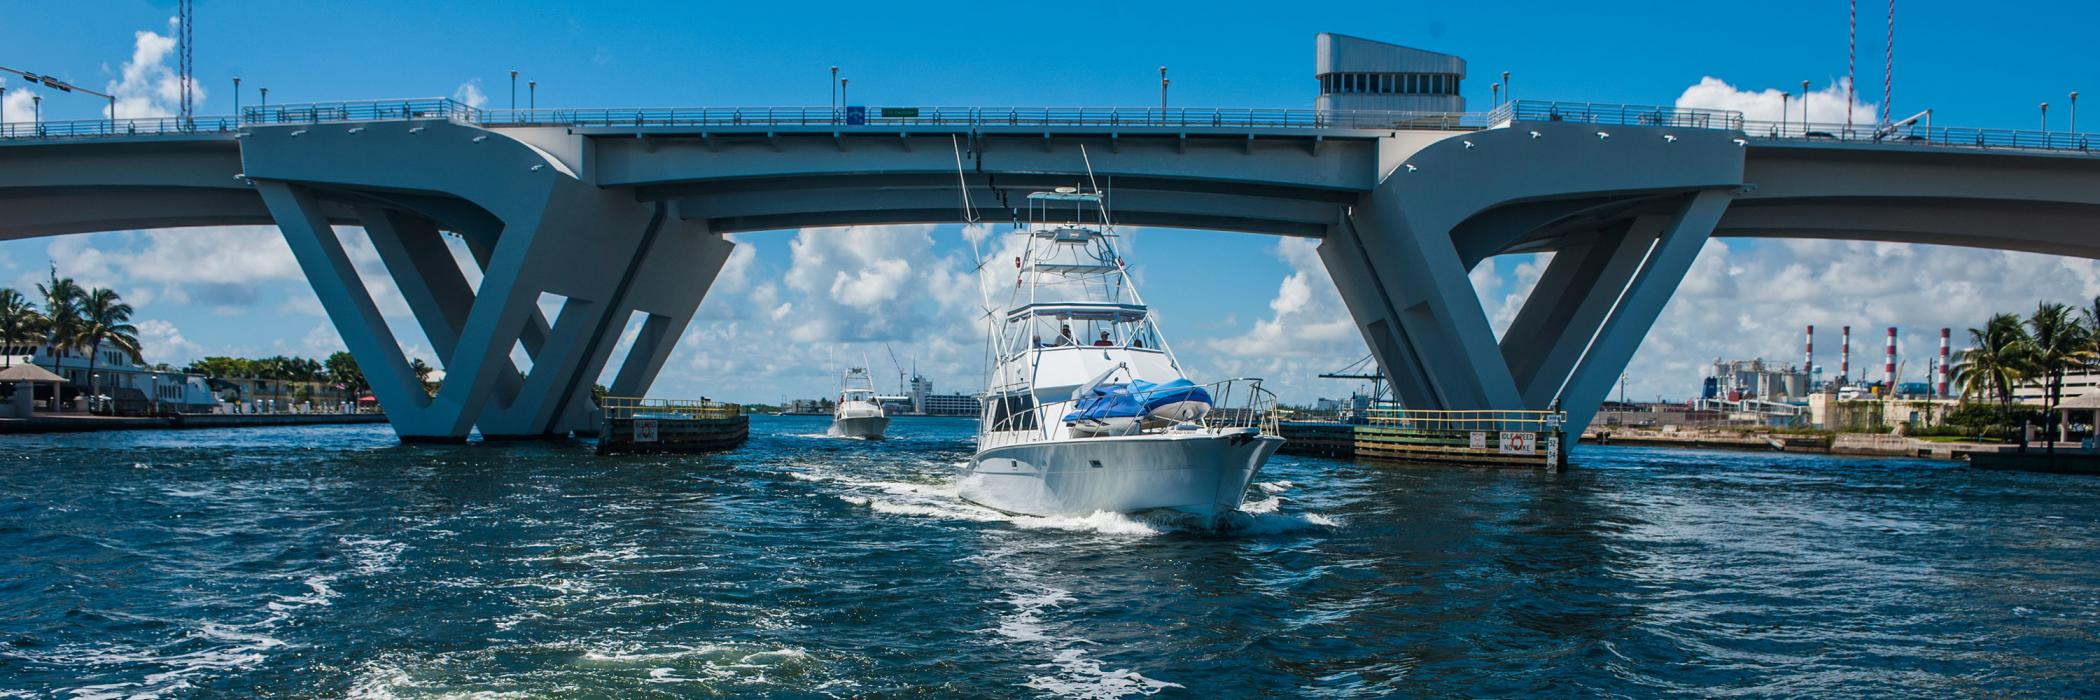 Drawbridge Fishing Boat